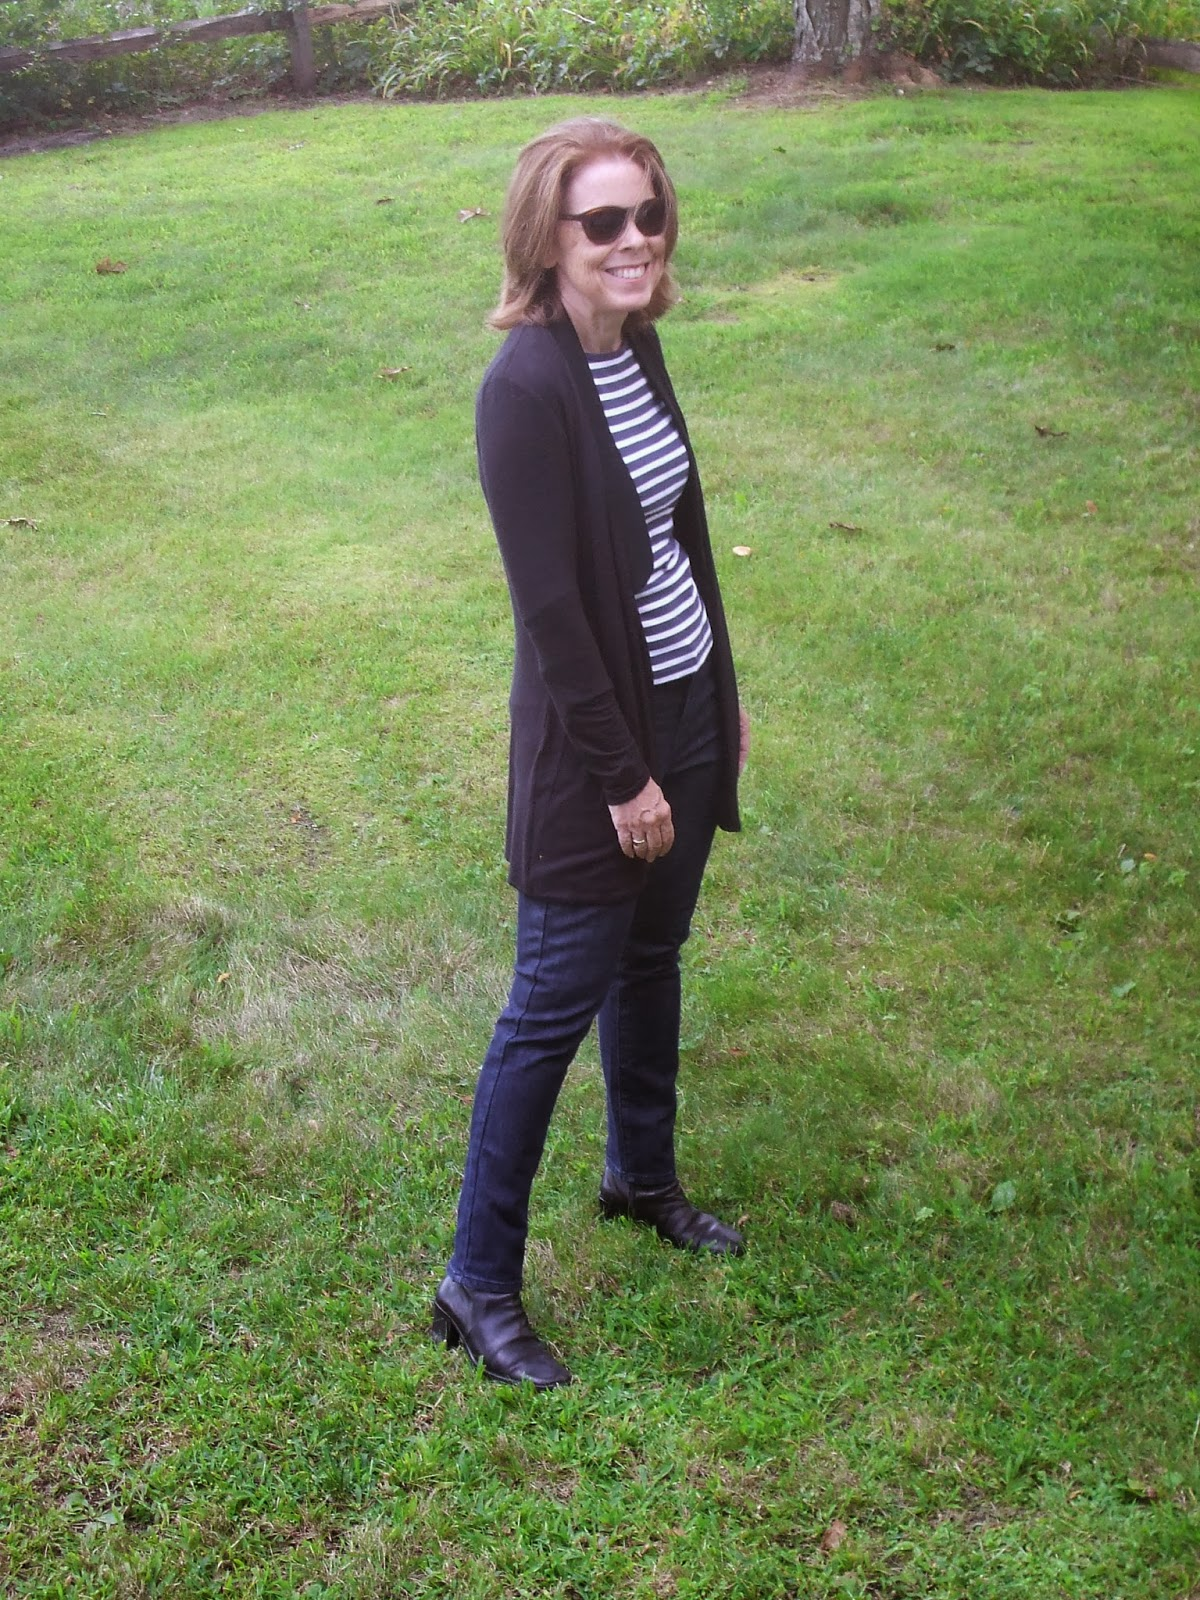 Stripe shirt and black cardigan for women over 50